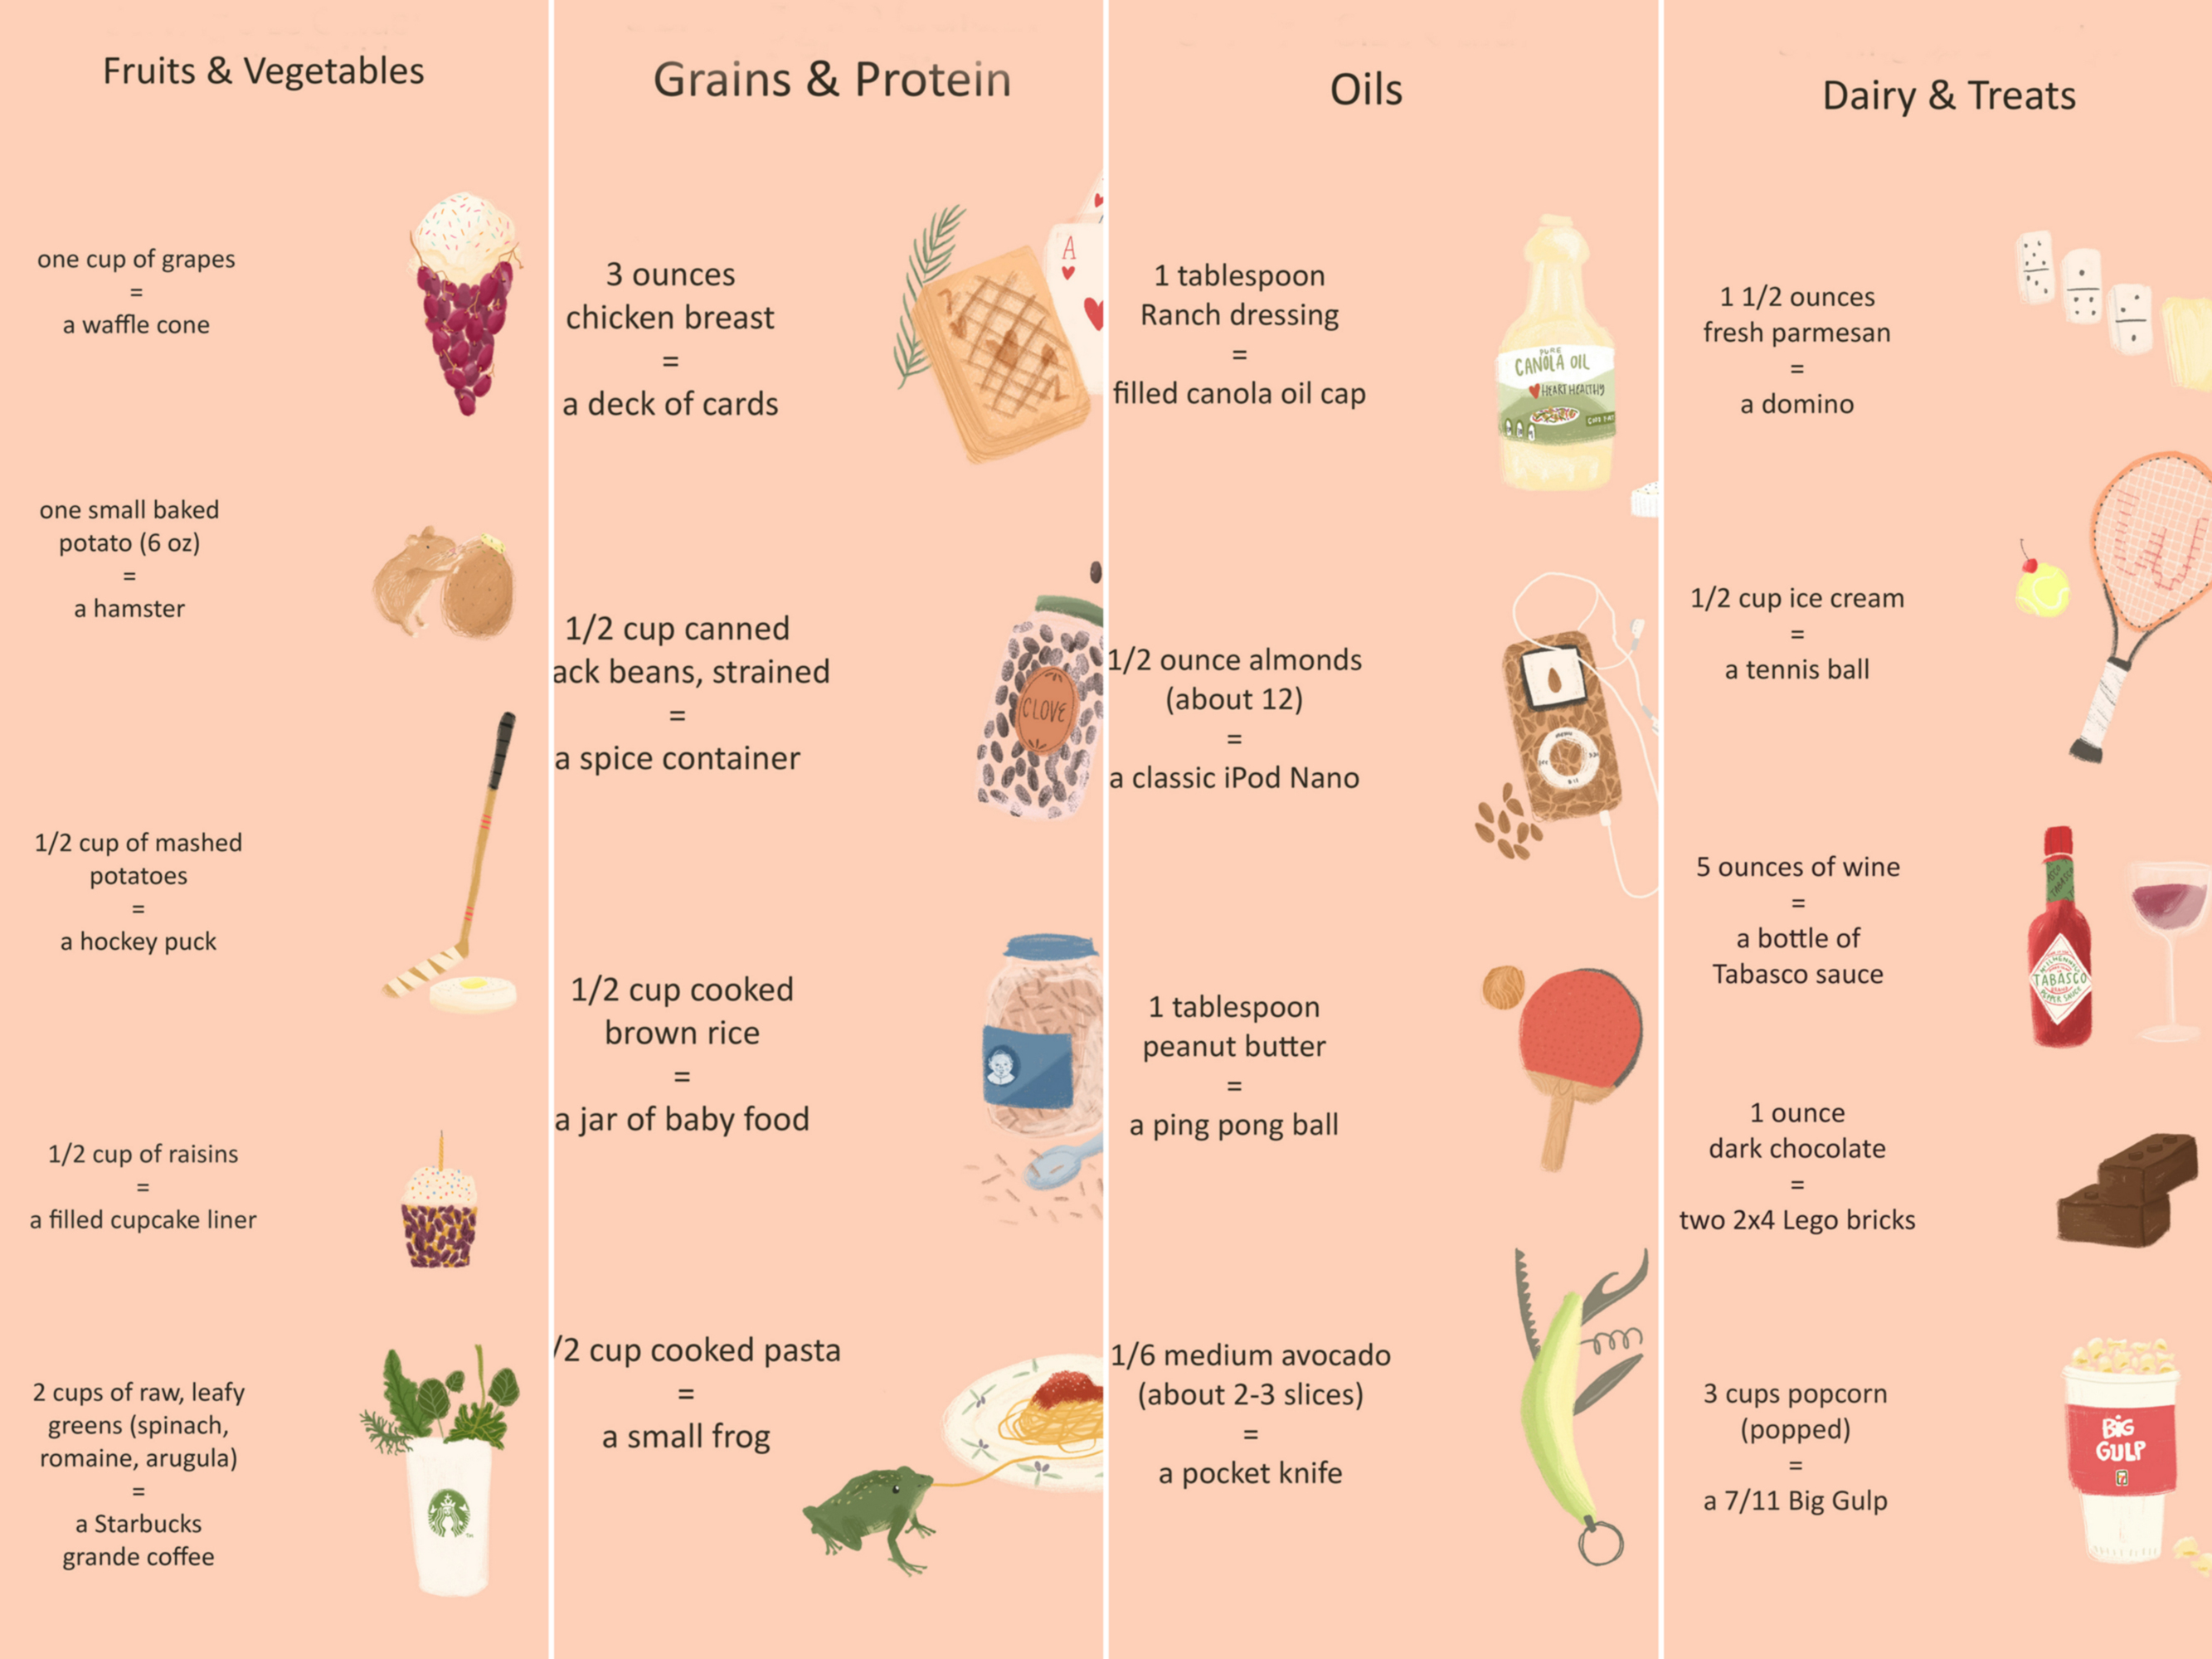 Serving Sizes of Common Foods